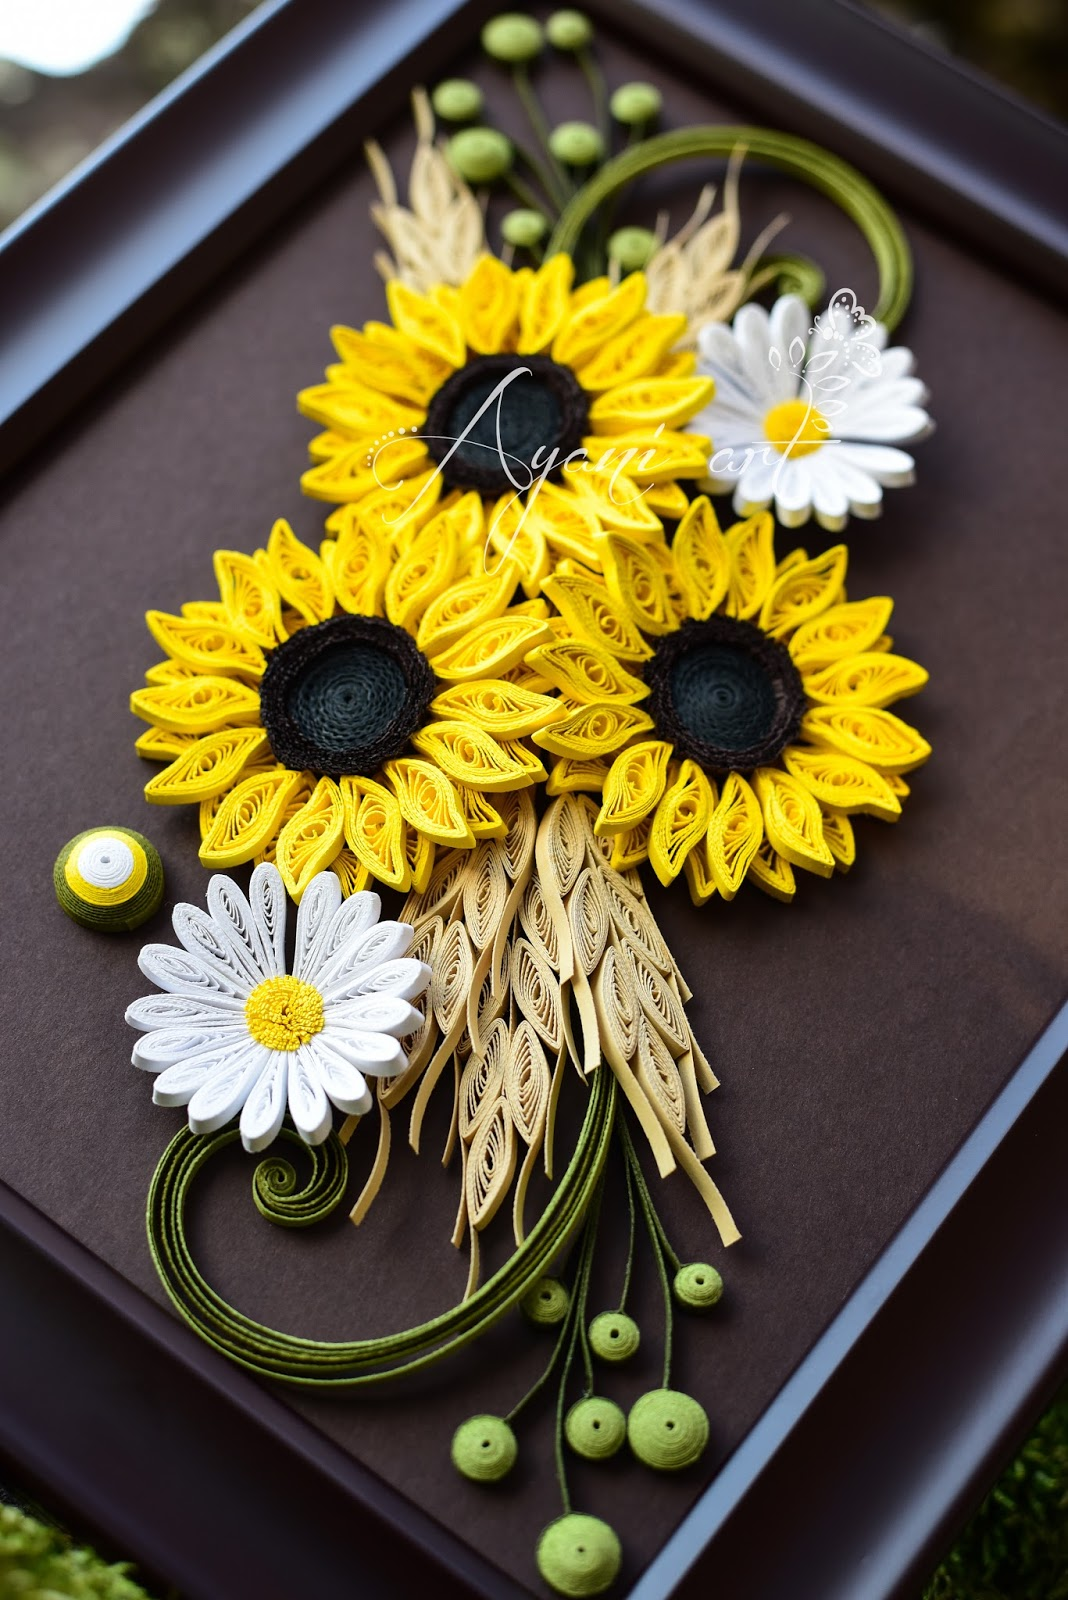 Ayani art: Quilling Sunflowers and Daisies